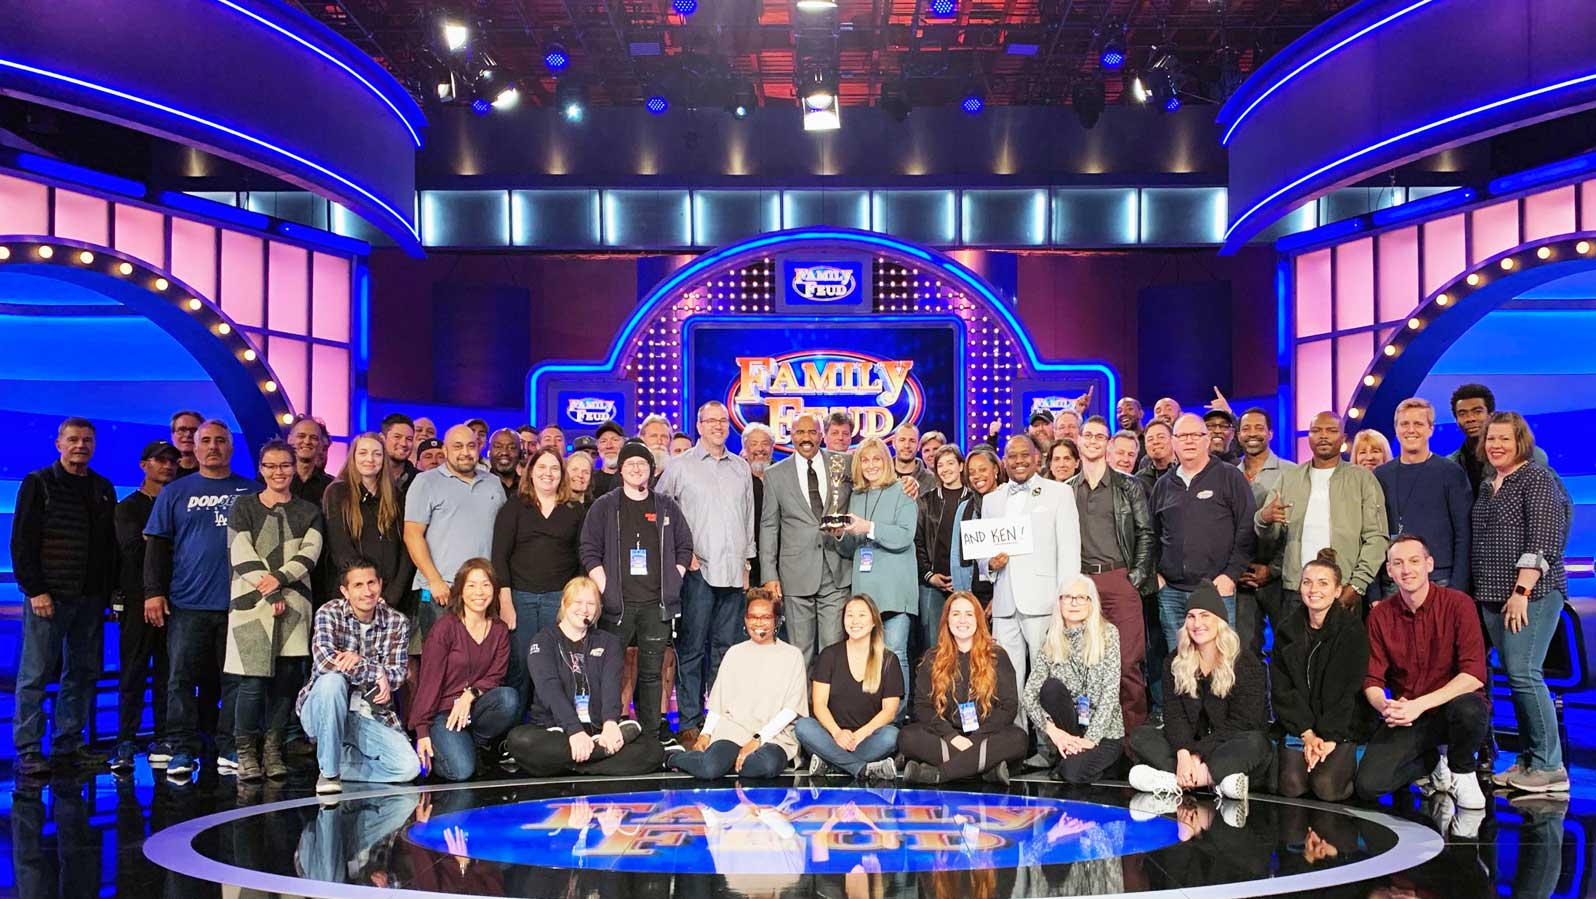 Family Feud brings home two Emmys!